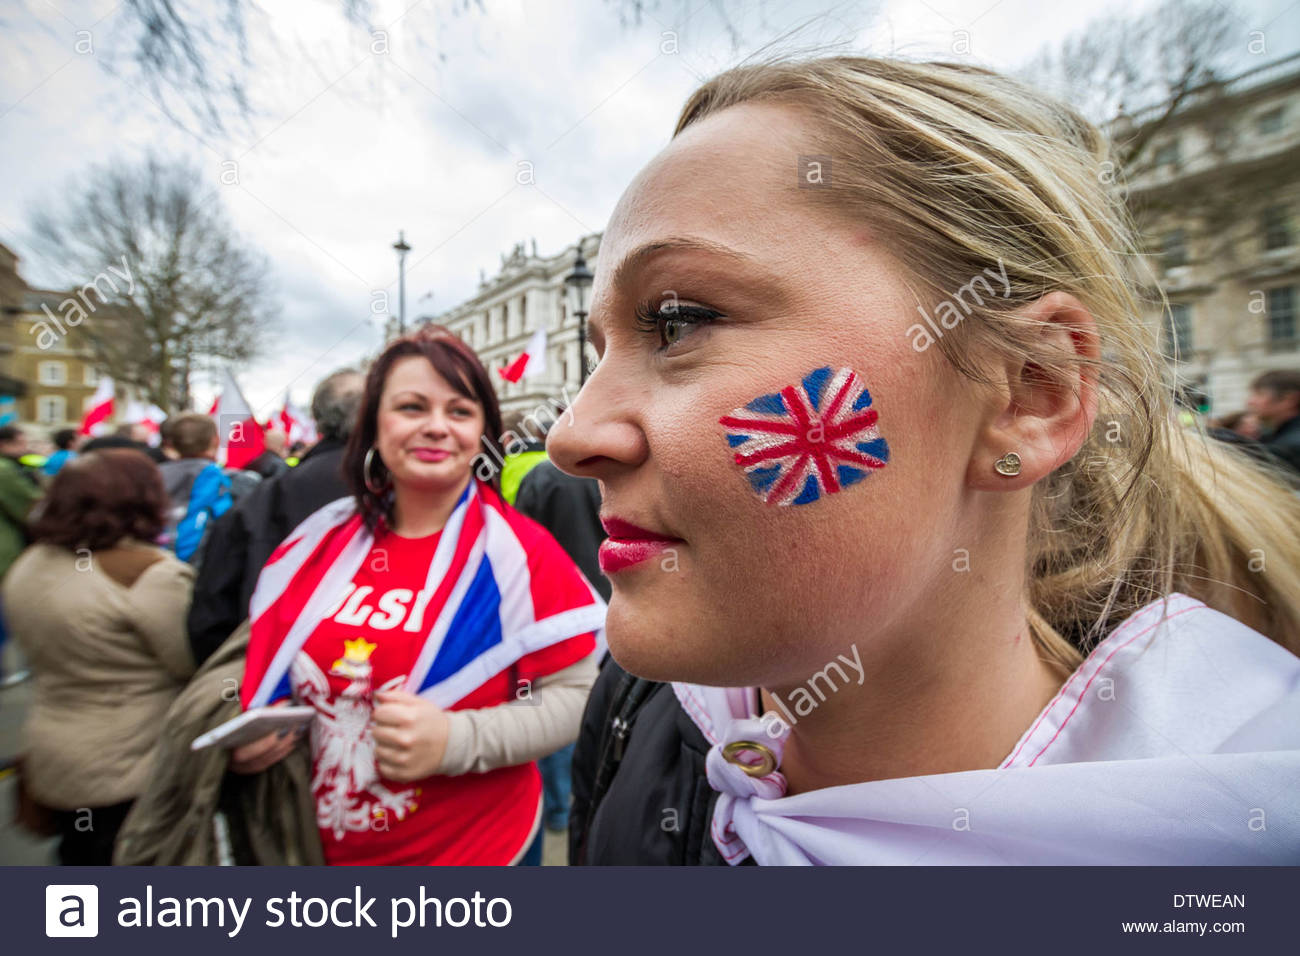 how did polish immigrants experience discrimination Incomplete europeans: polish migrants' experience of discrimination in the uk is complicated by their whiteness although central-east europeans have officially been a part of the eu for more than a decade, they have not been completely embraced.